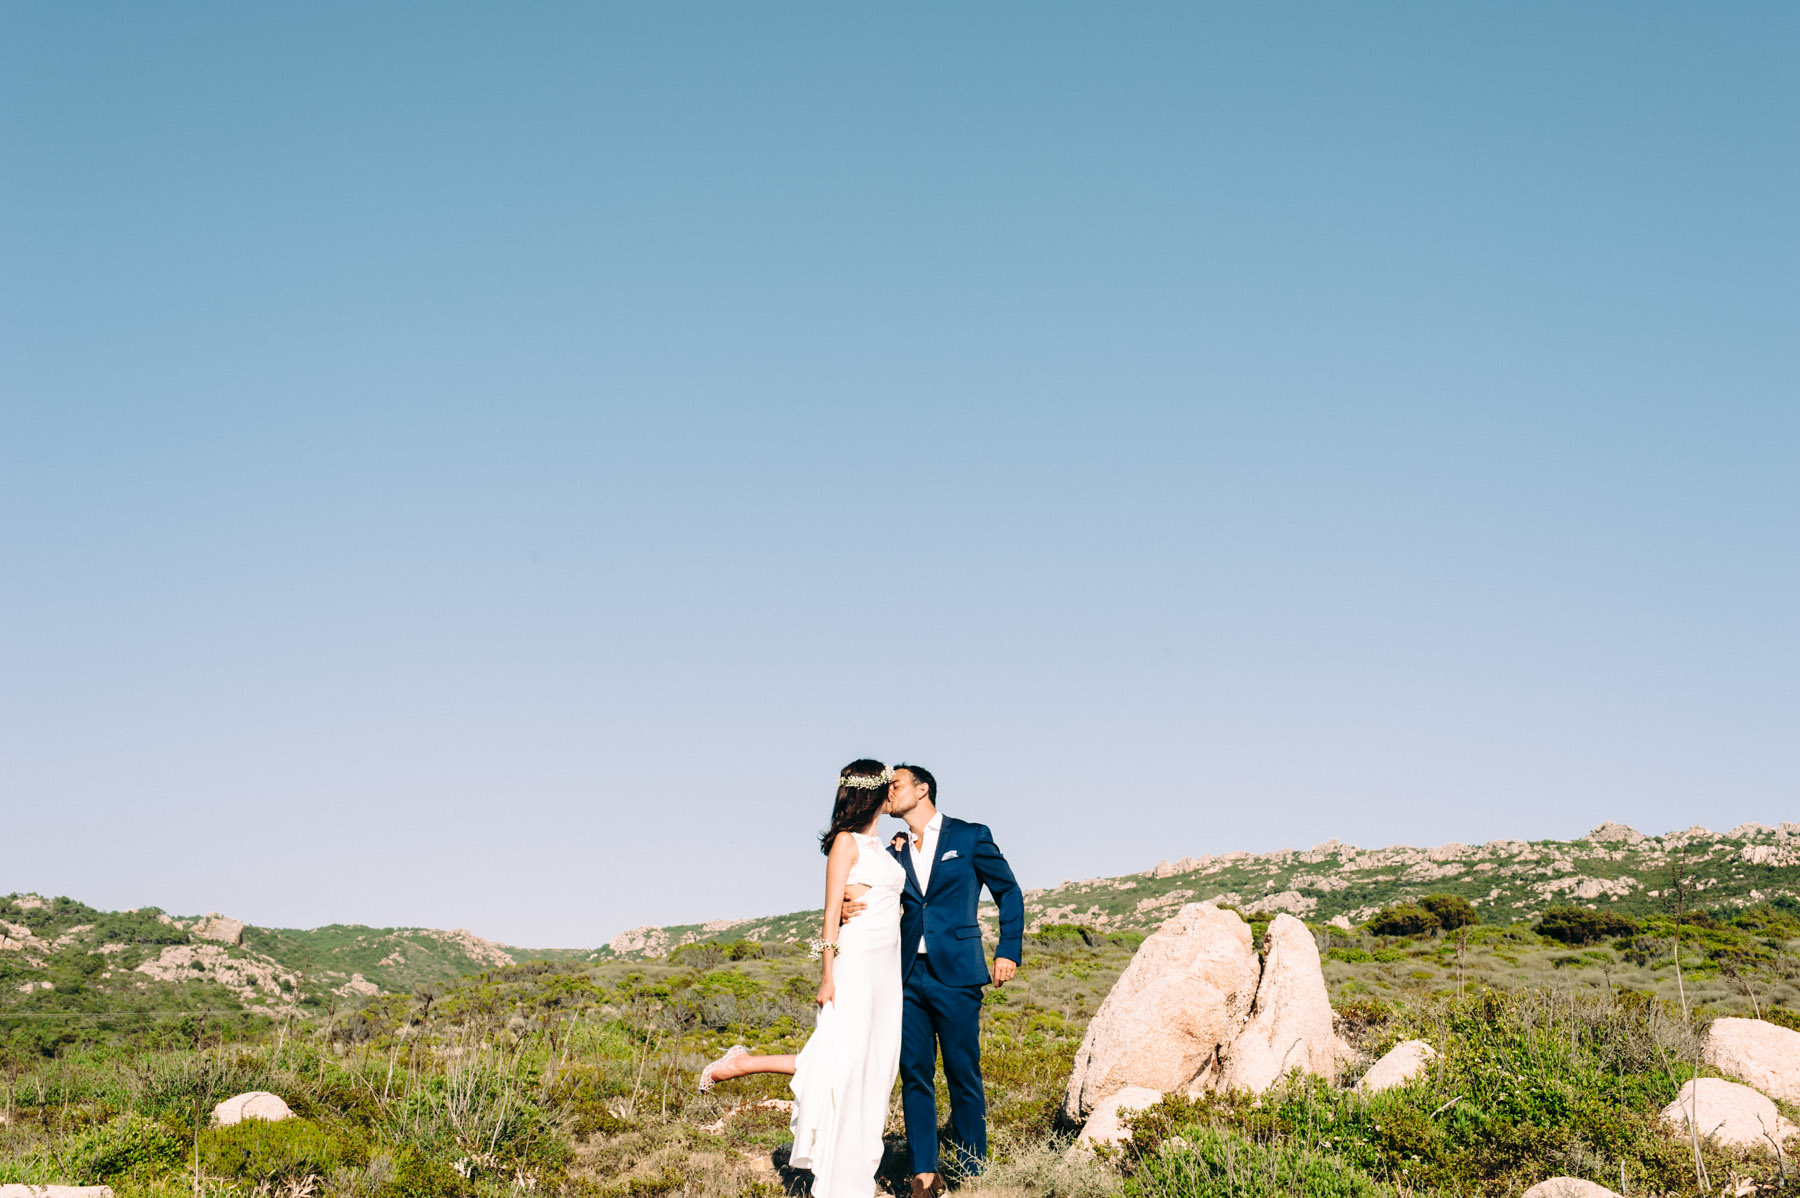 Photographe mariage montpellier corse - Mademoiselle G photographie (143)